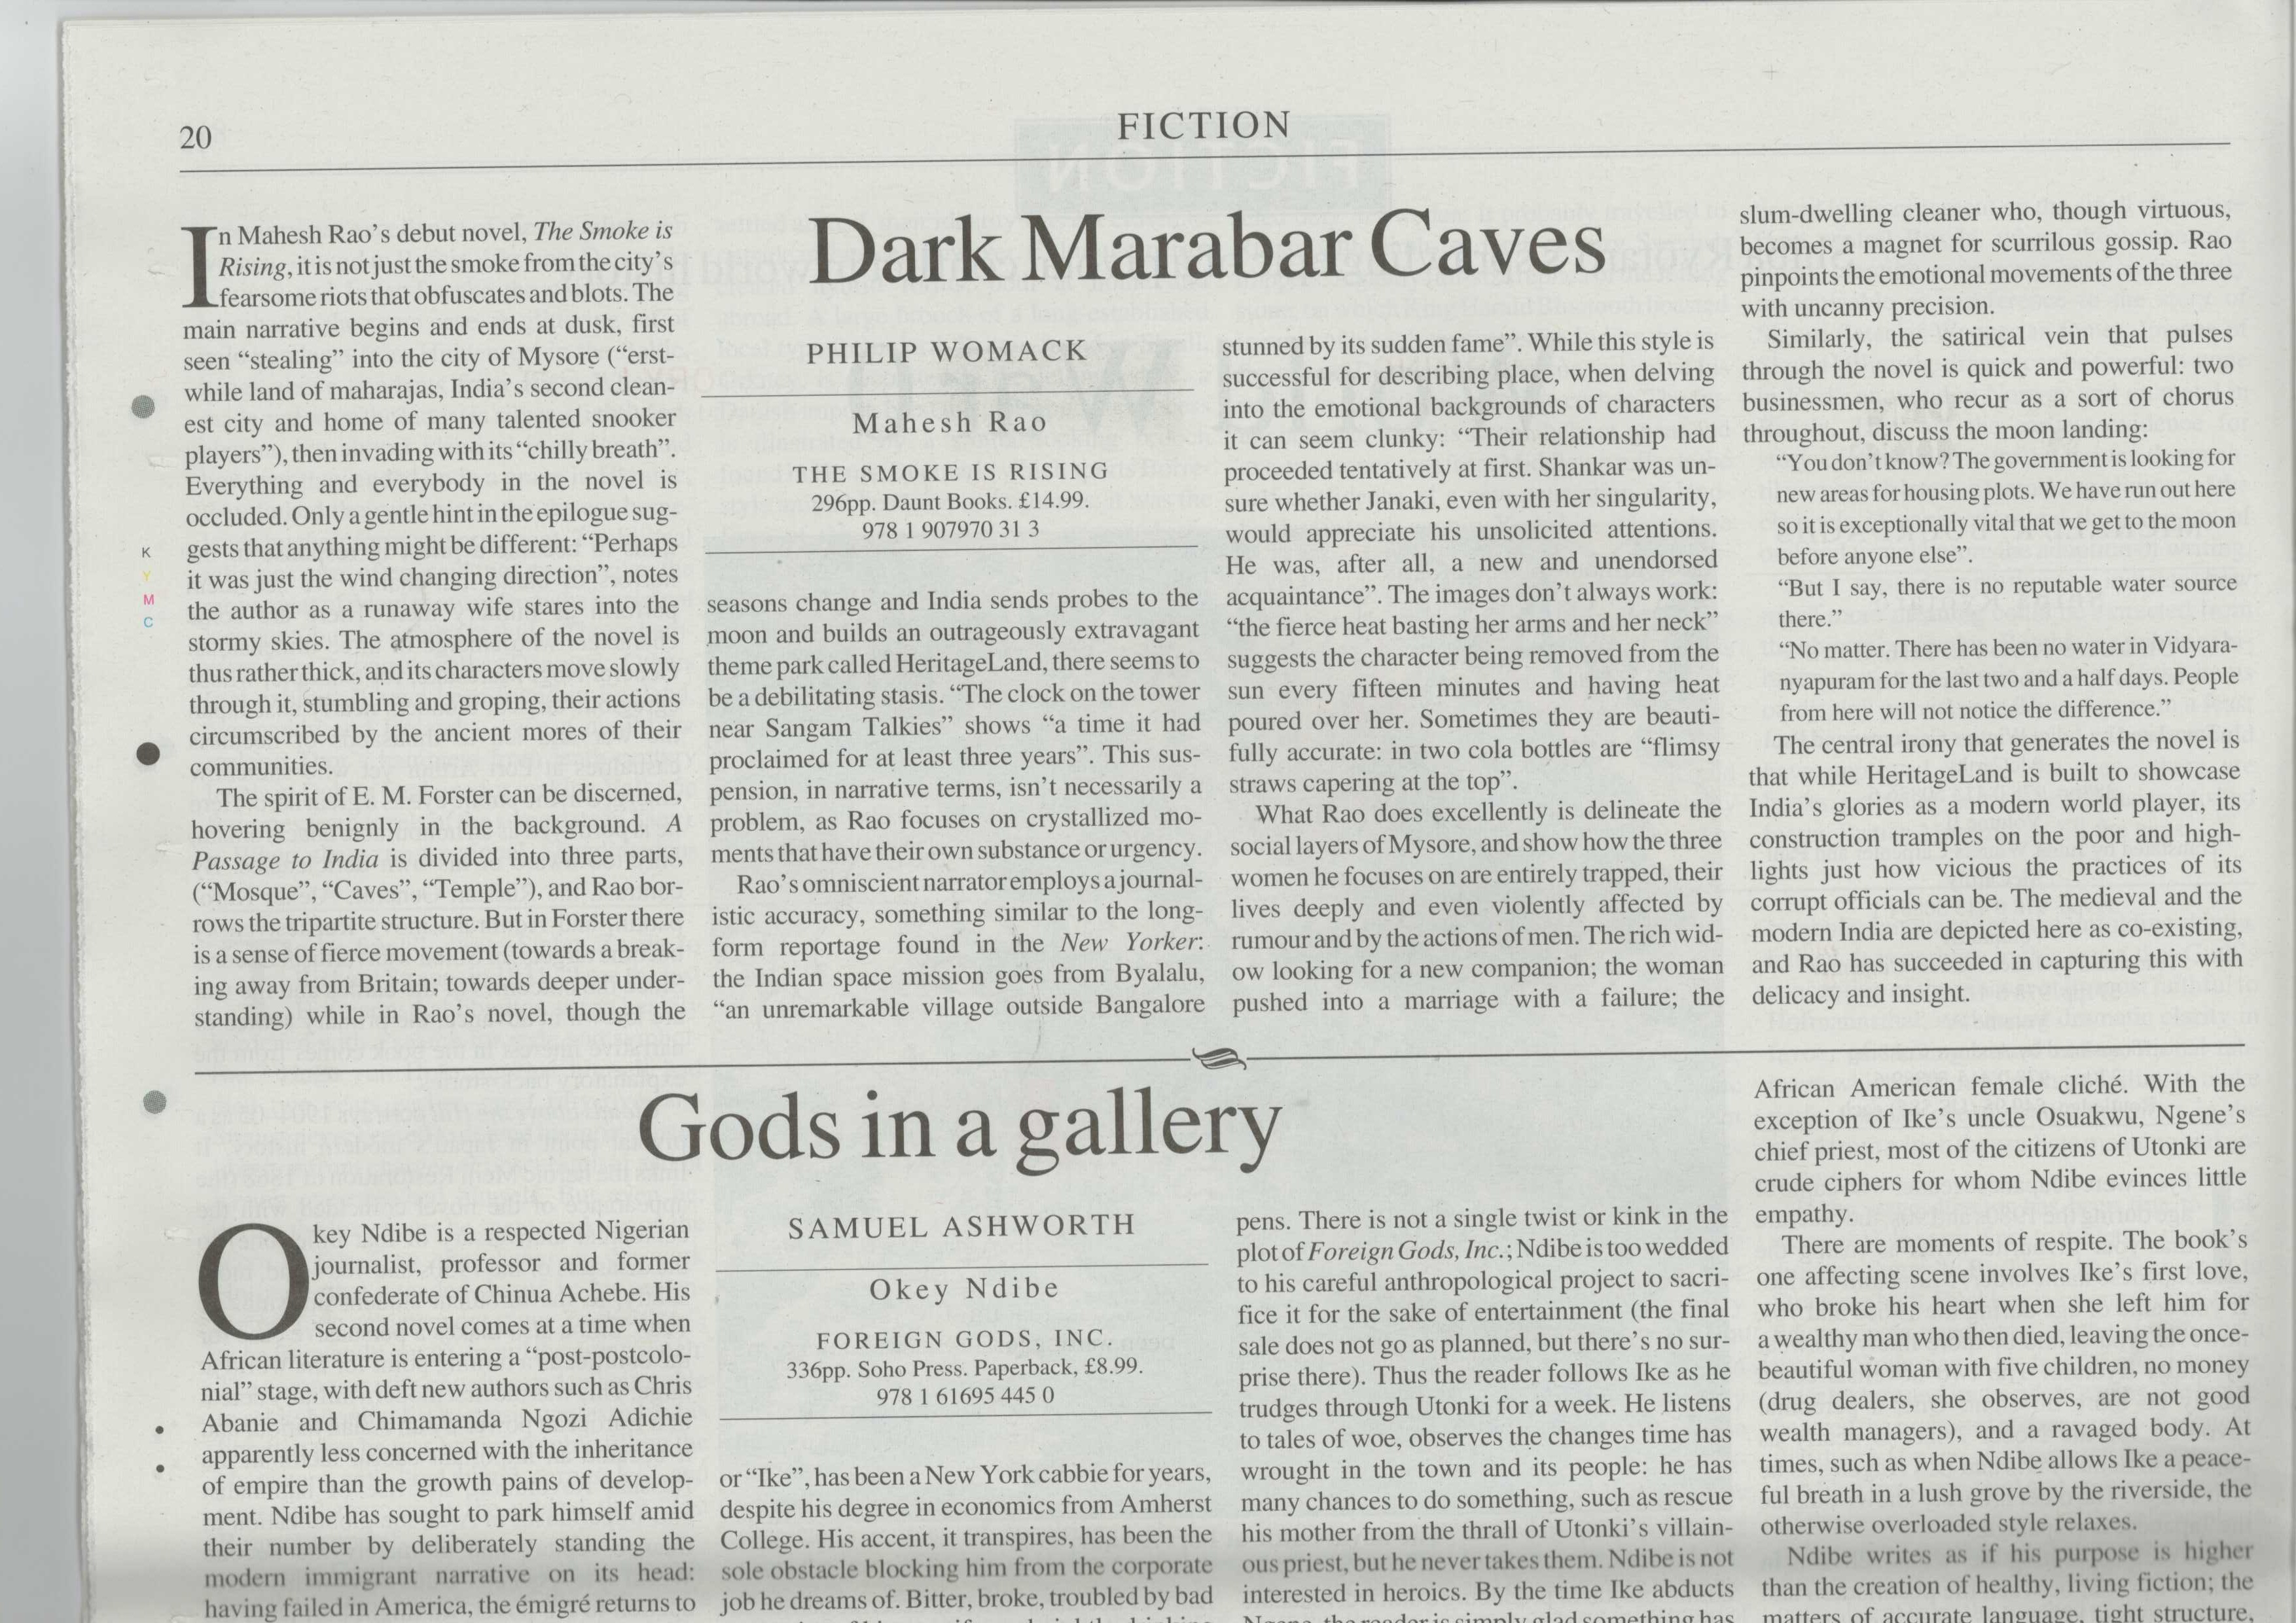 Times literary review